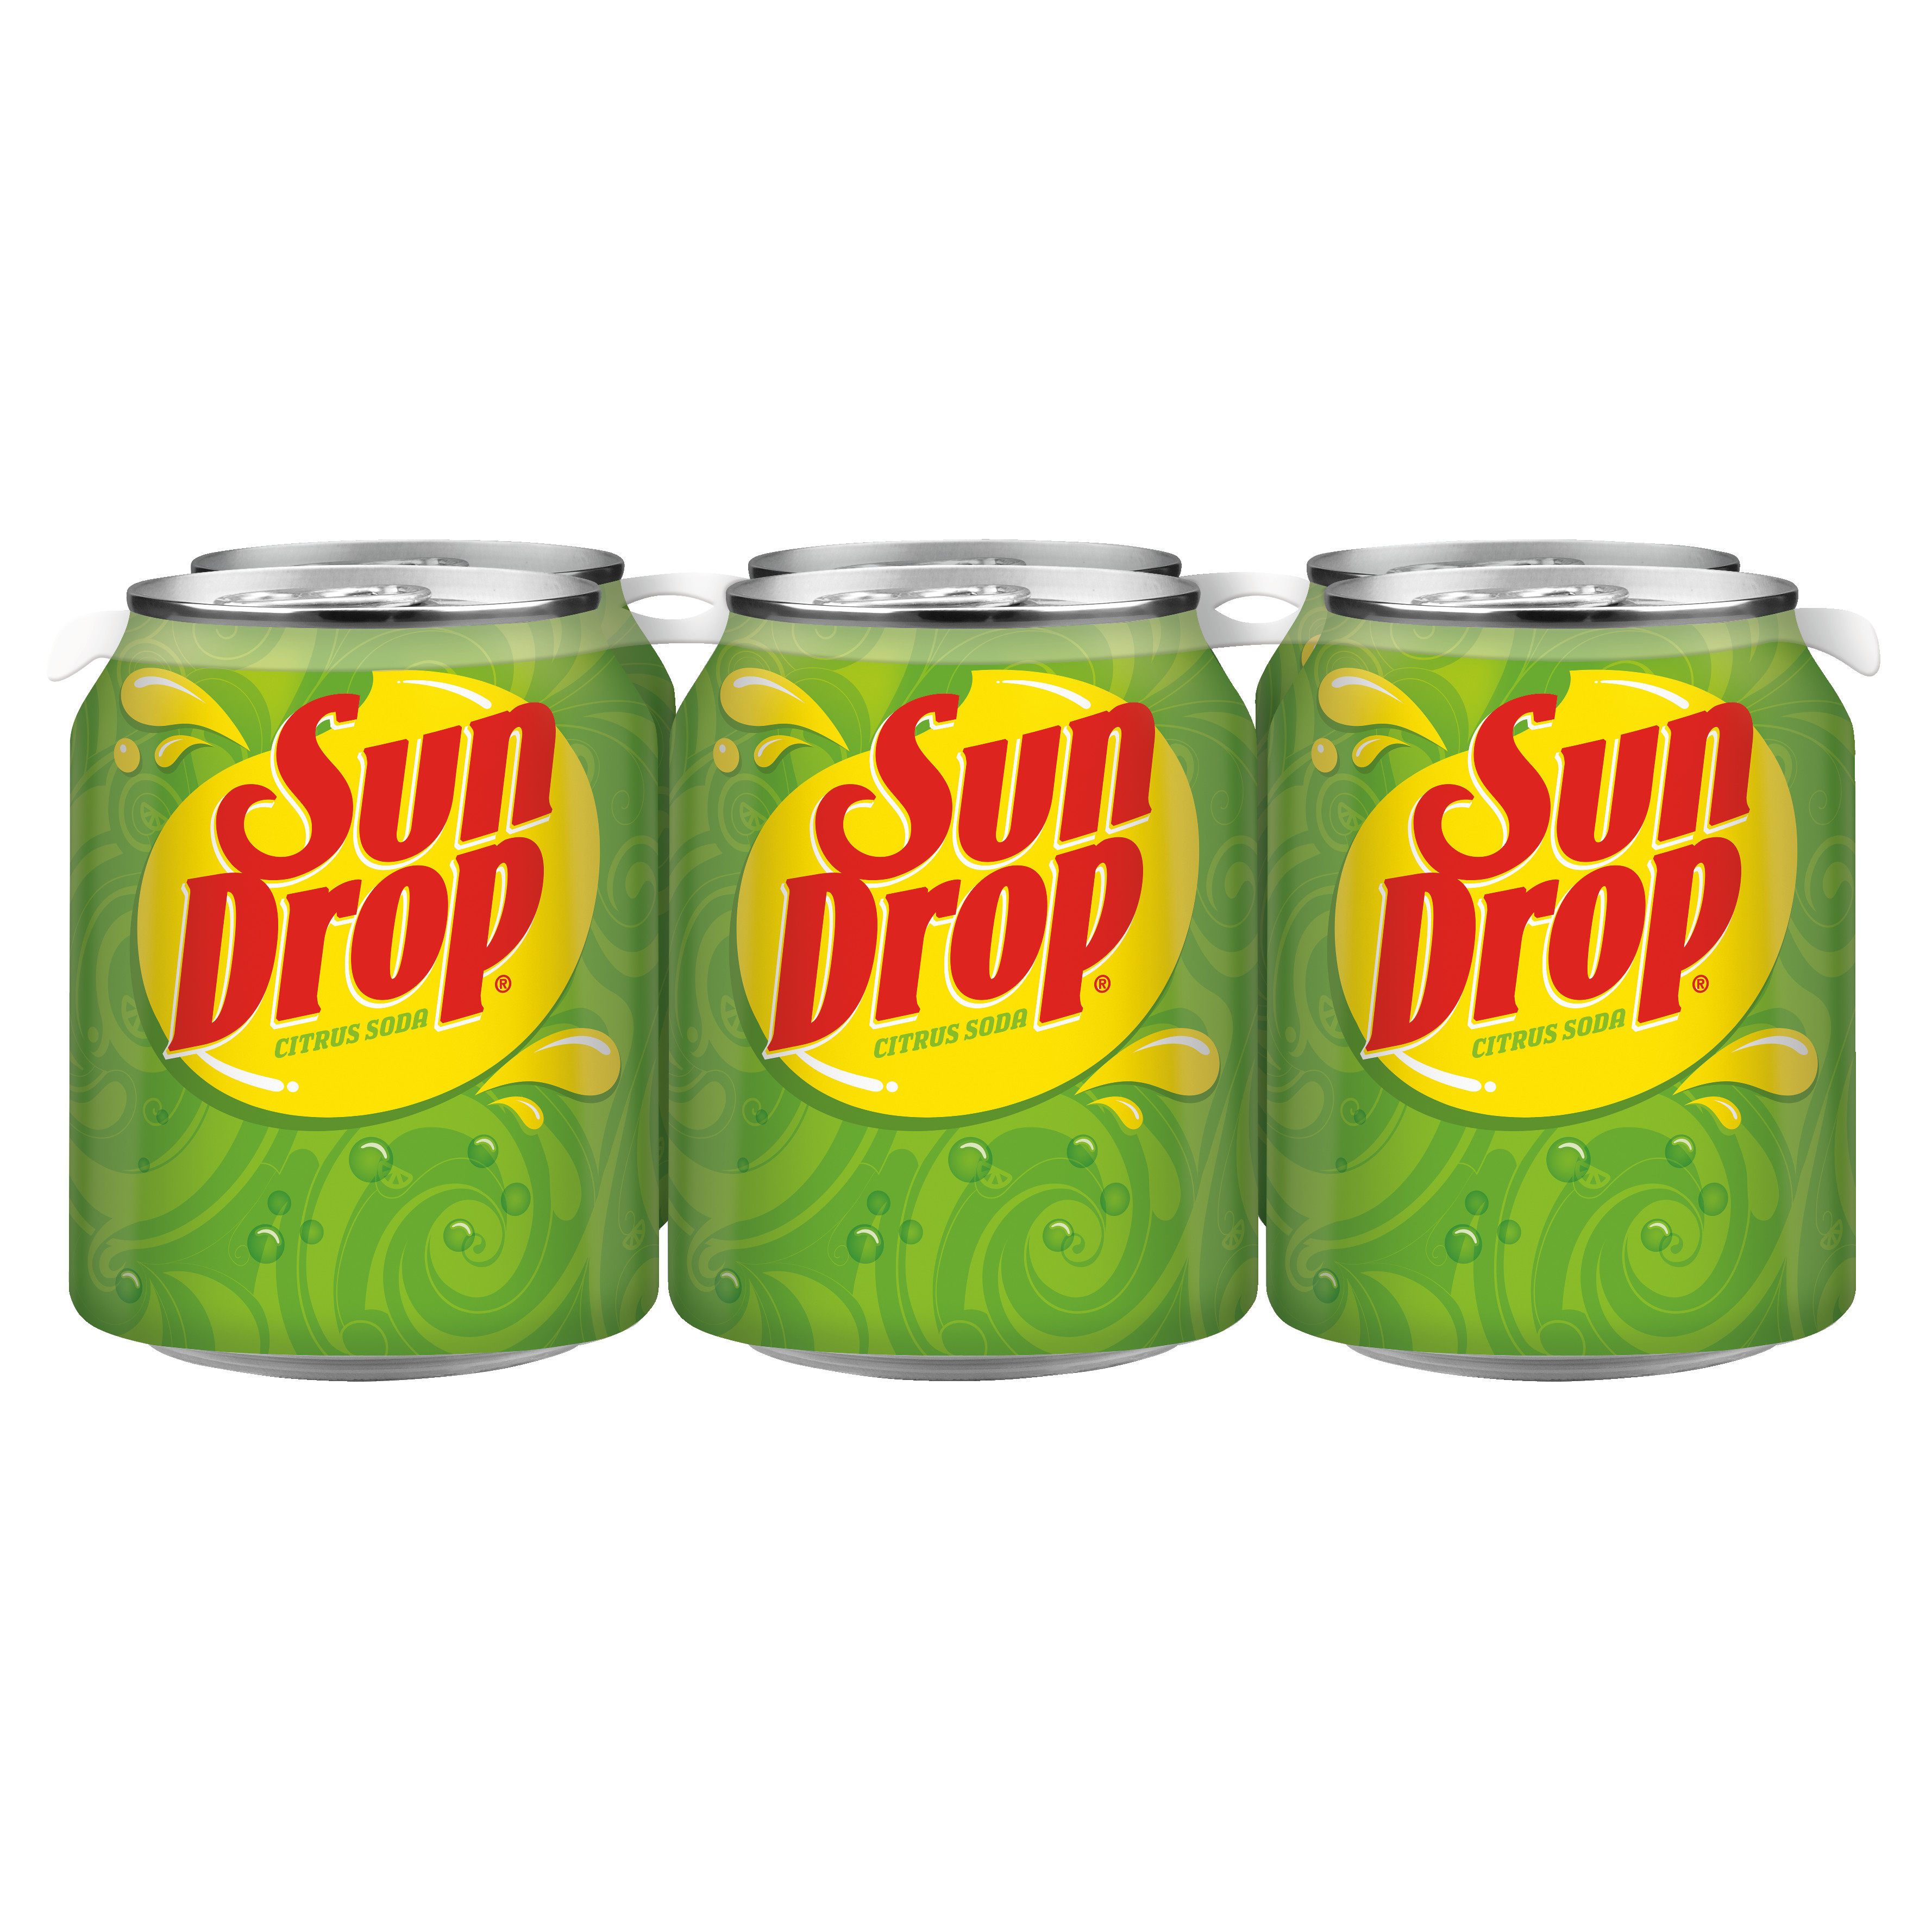 Sun Drop, 8 fl oz, 6 pack